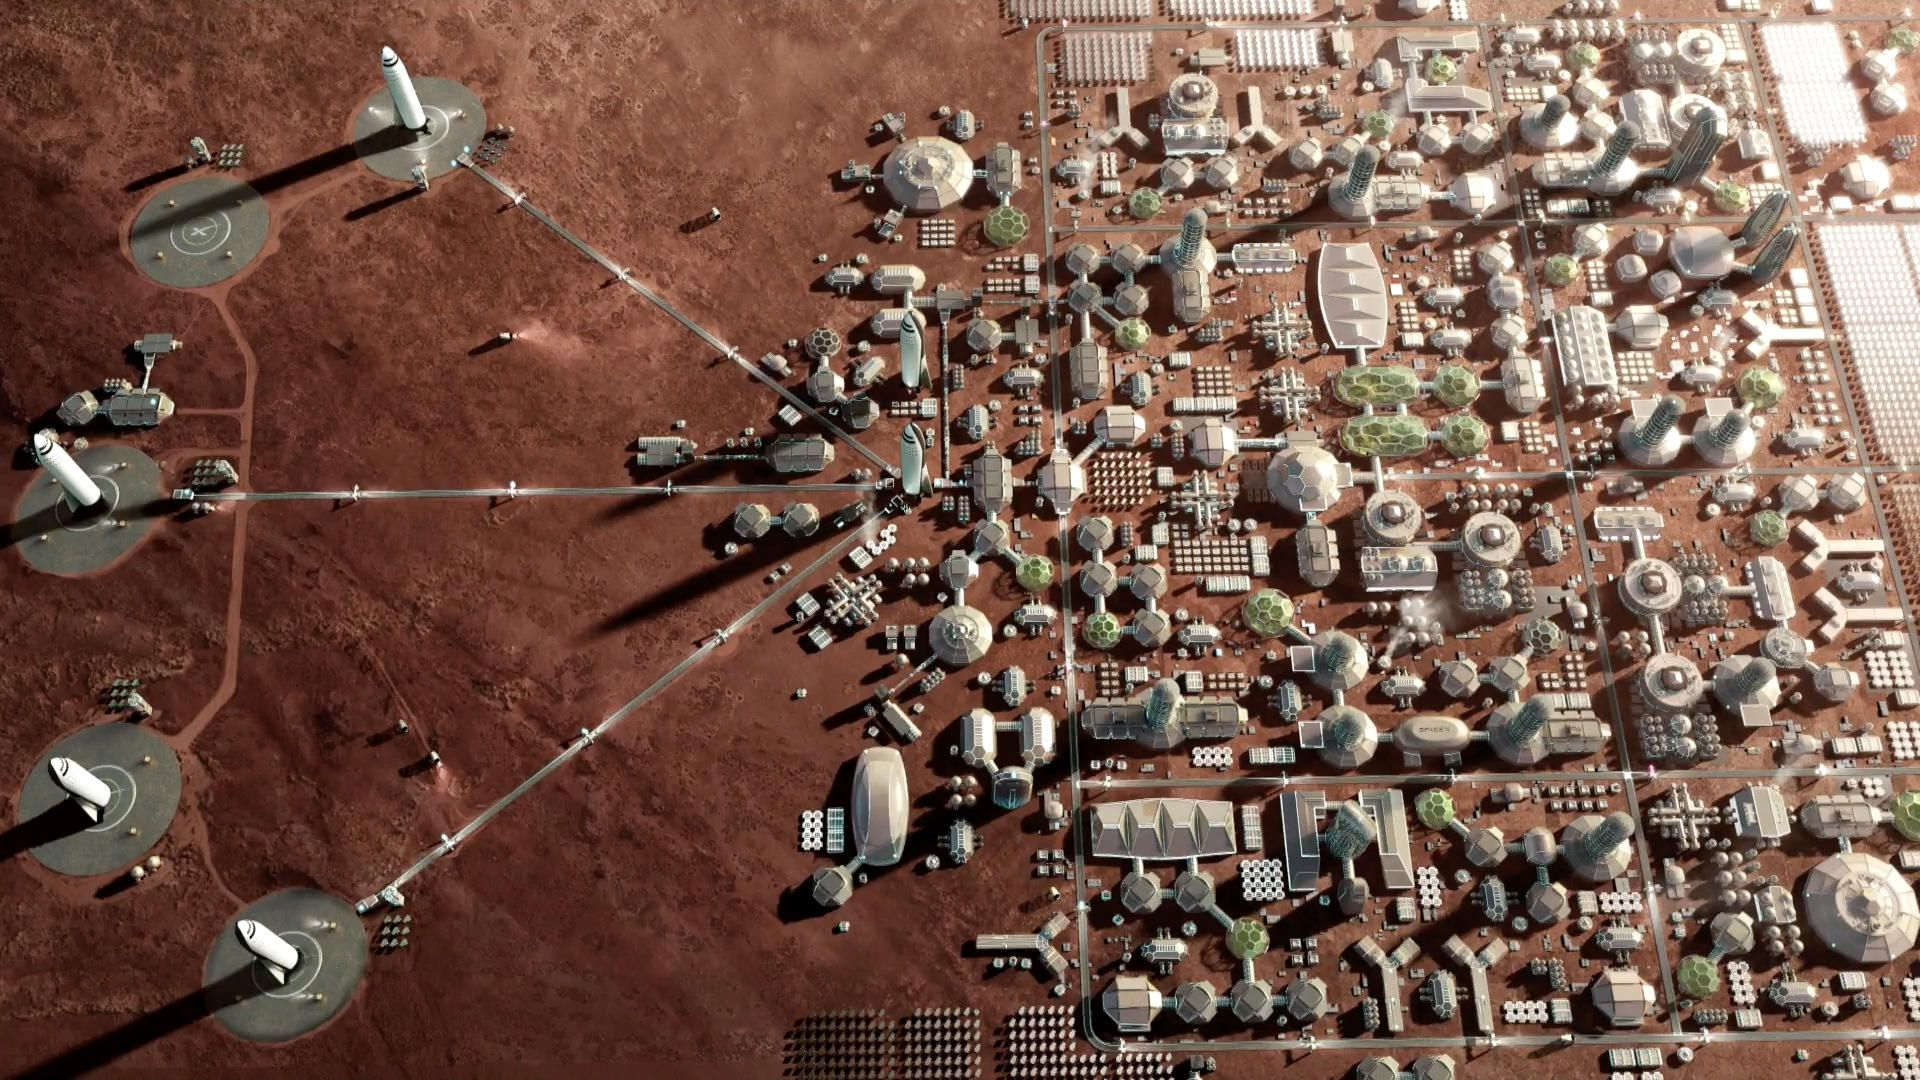 For Mars colonization, new water map may hold key of where to land - NASASpaceflight.com